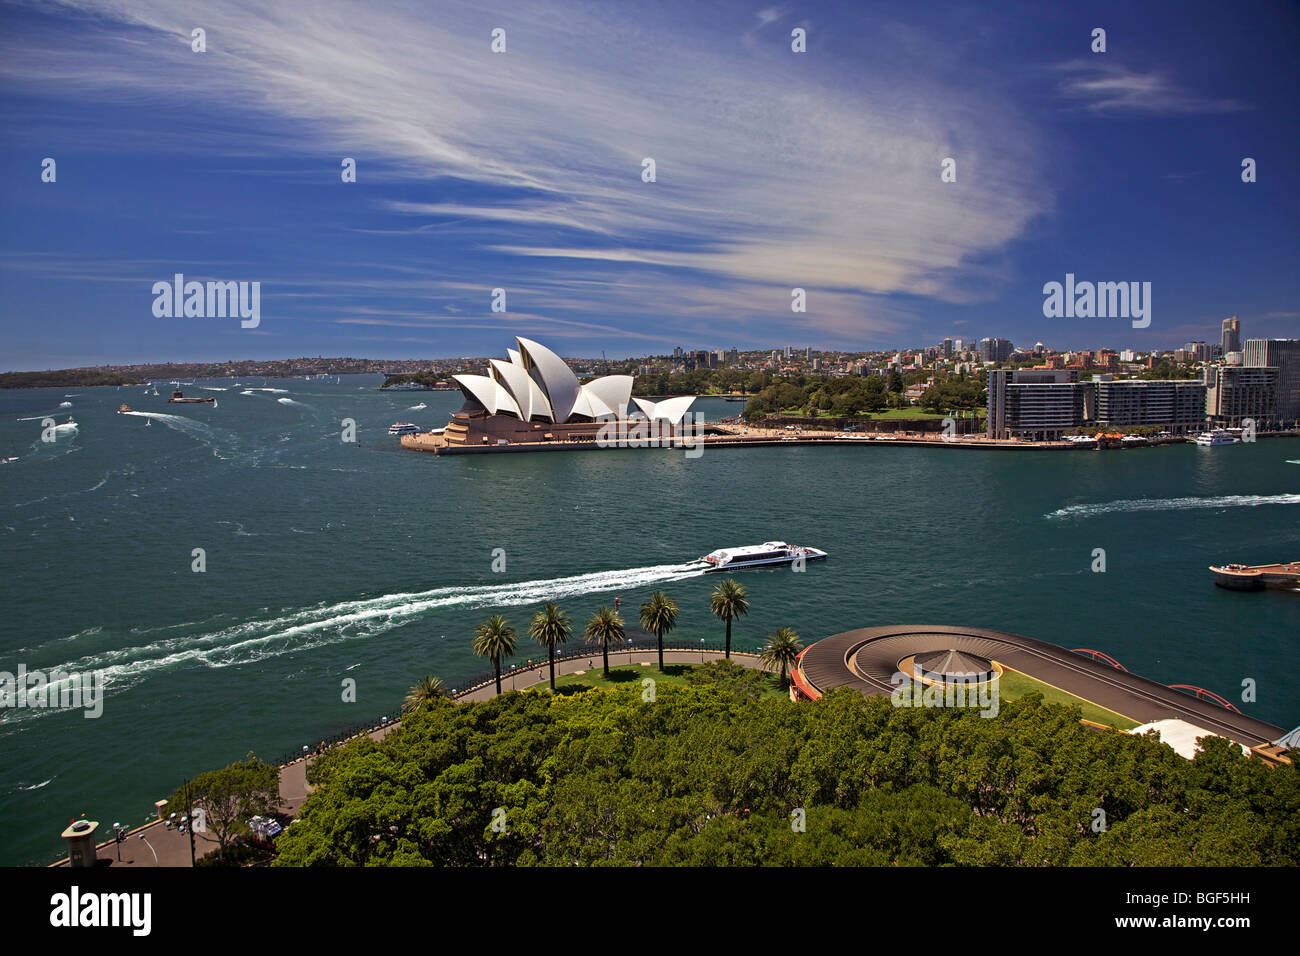 View from Harbour Bridge of Opera House and Circular Quay, Sydney, Australia - Stock Image